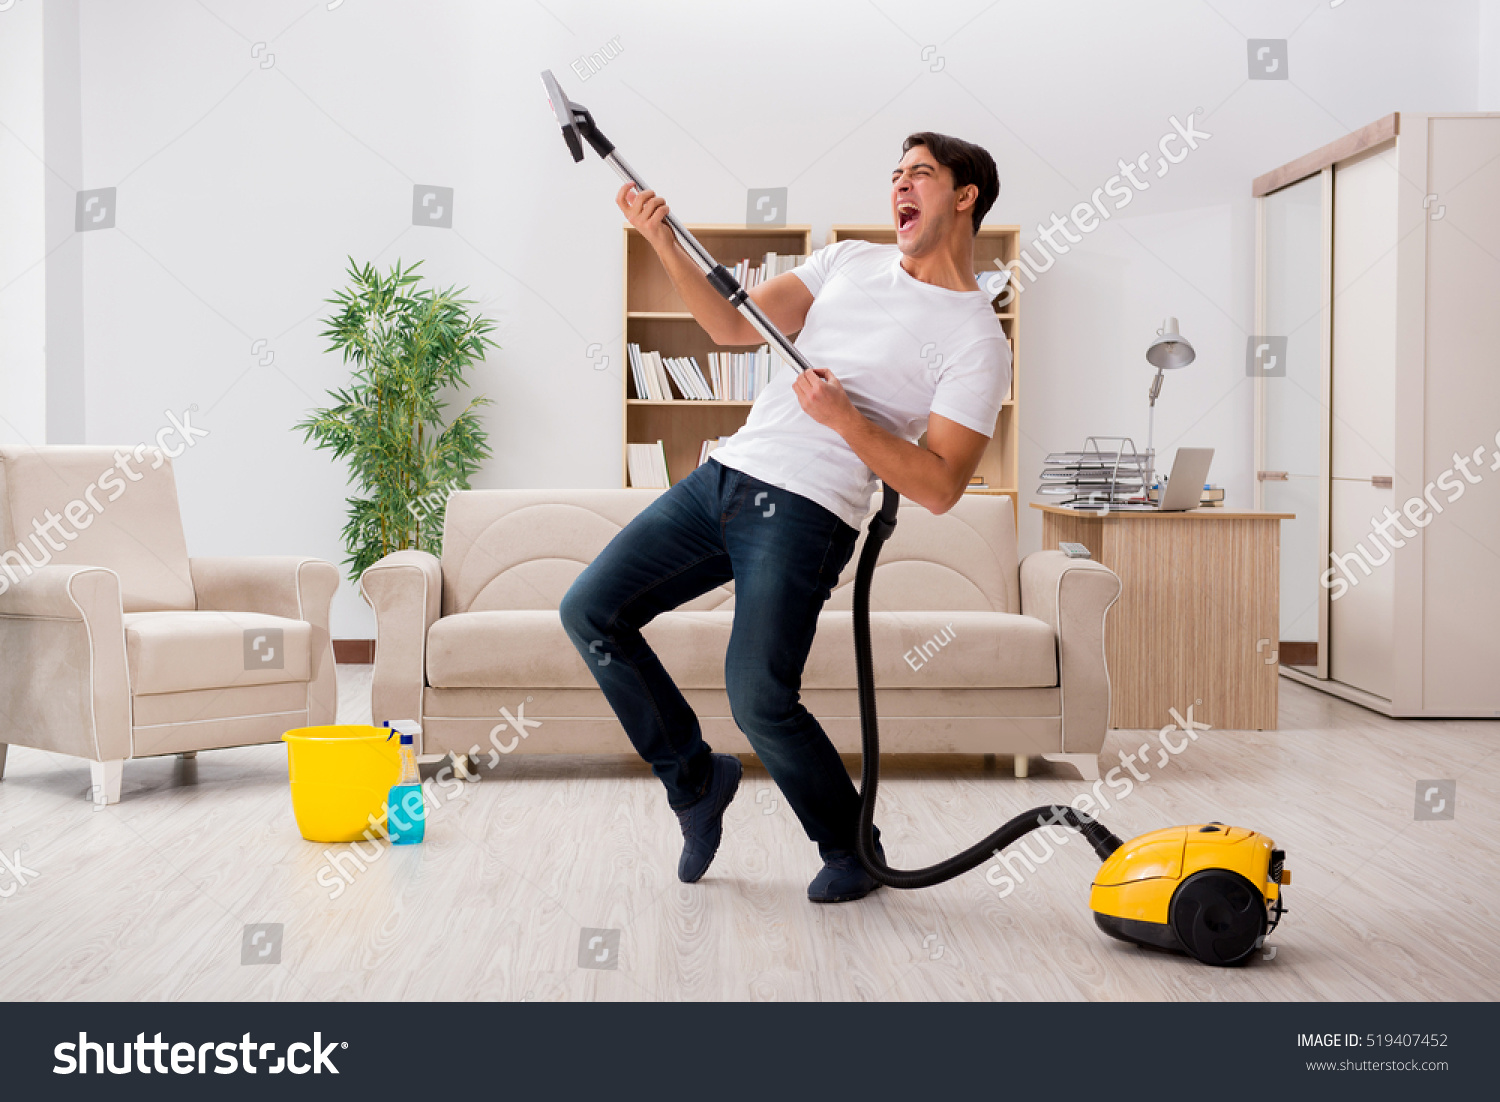 Man cleaning home vacuum cleaner stock photo 519407452 for House cleaning stock photos